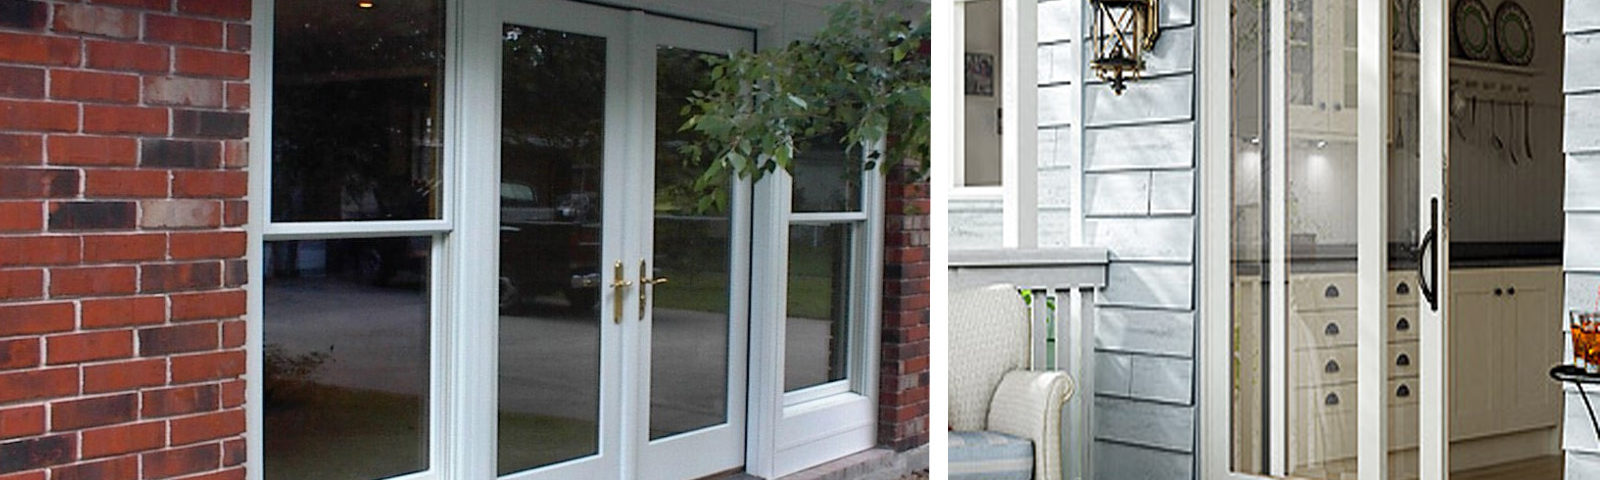 Benefits of Installing a Fiberglass Door for the Residence